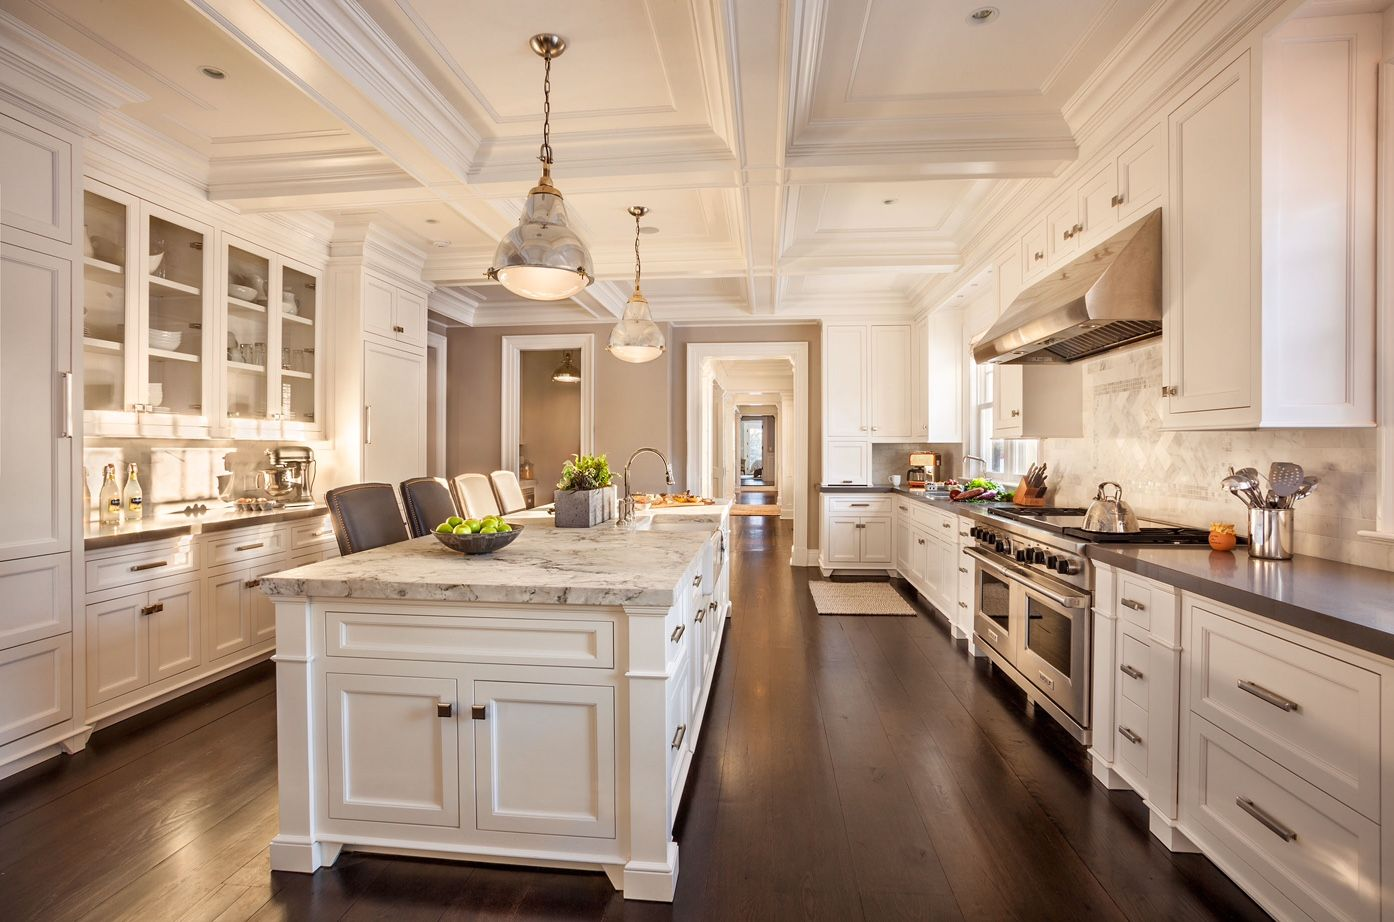 counters hardware cabinets lights ceiling floors counters